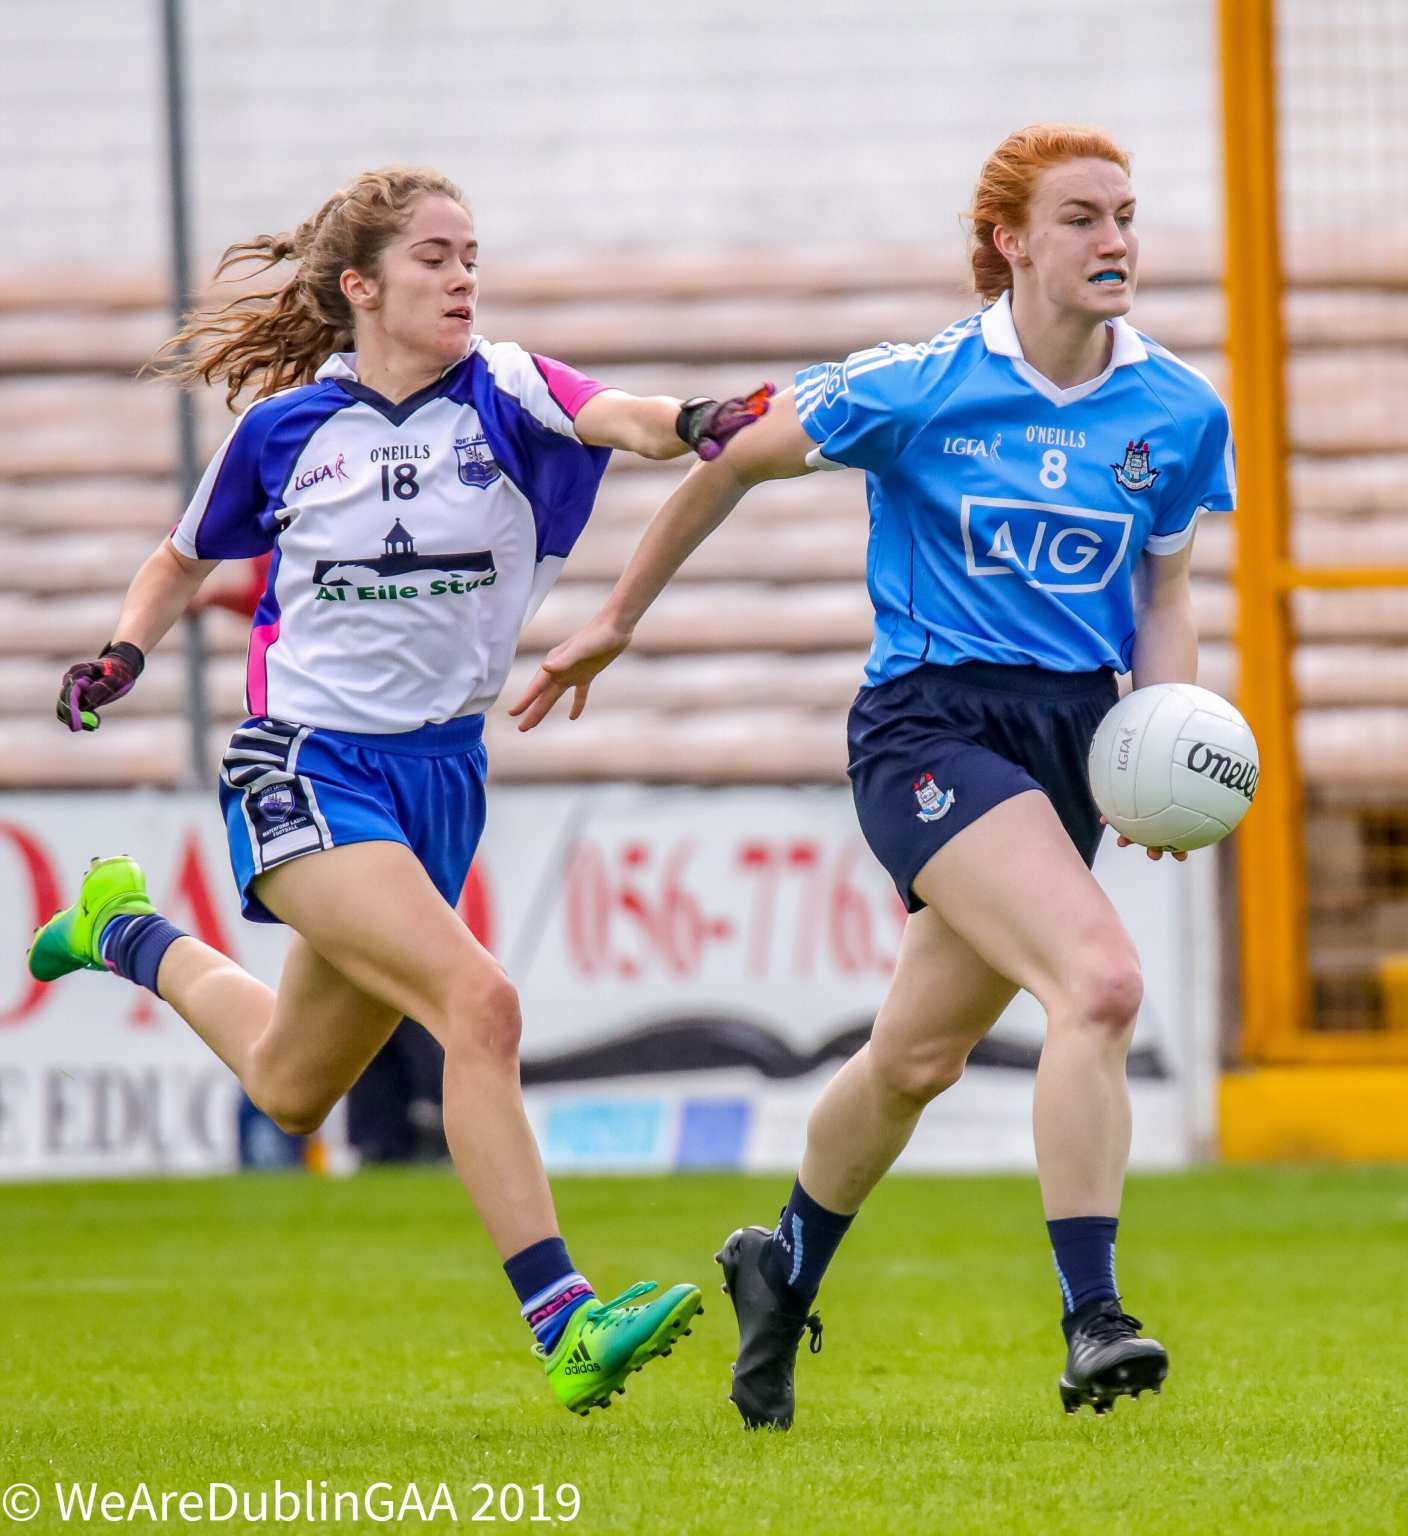 Dublin's Lauren Magee gets away from a Waterford player in their game in 2017, the Dublin Ladies Footballers fave off against the same opposition this weekend in their opening group game of the TG4 Senior All Ireland series